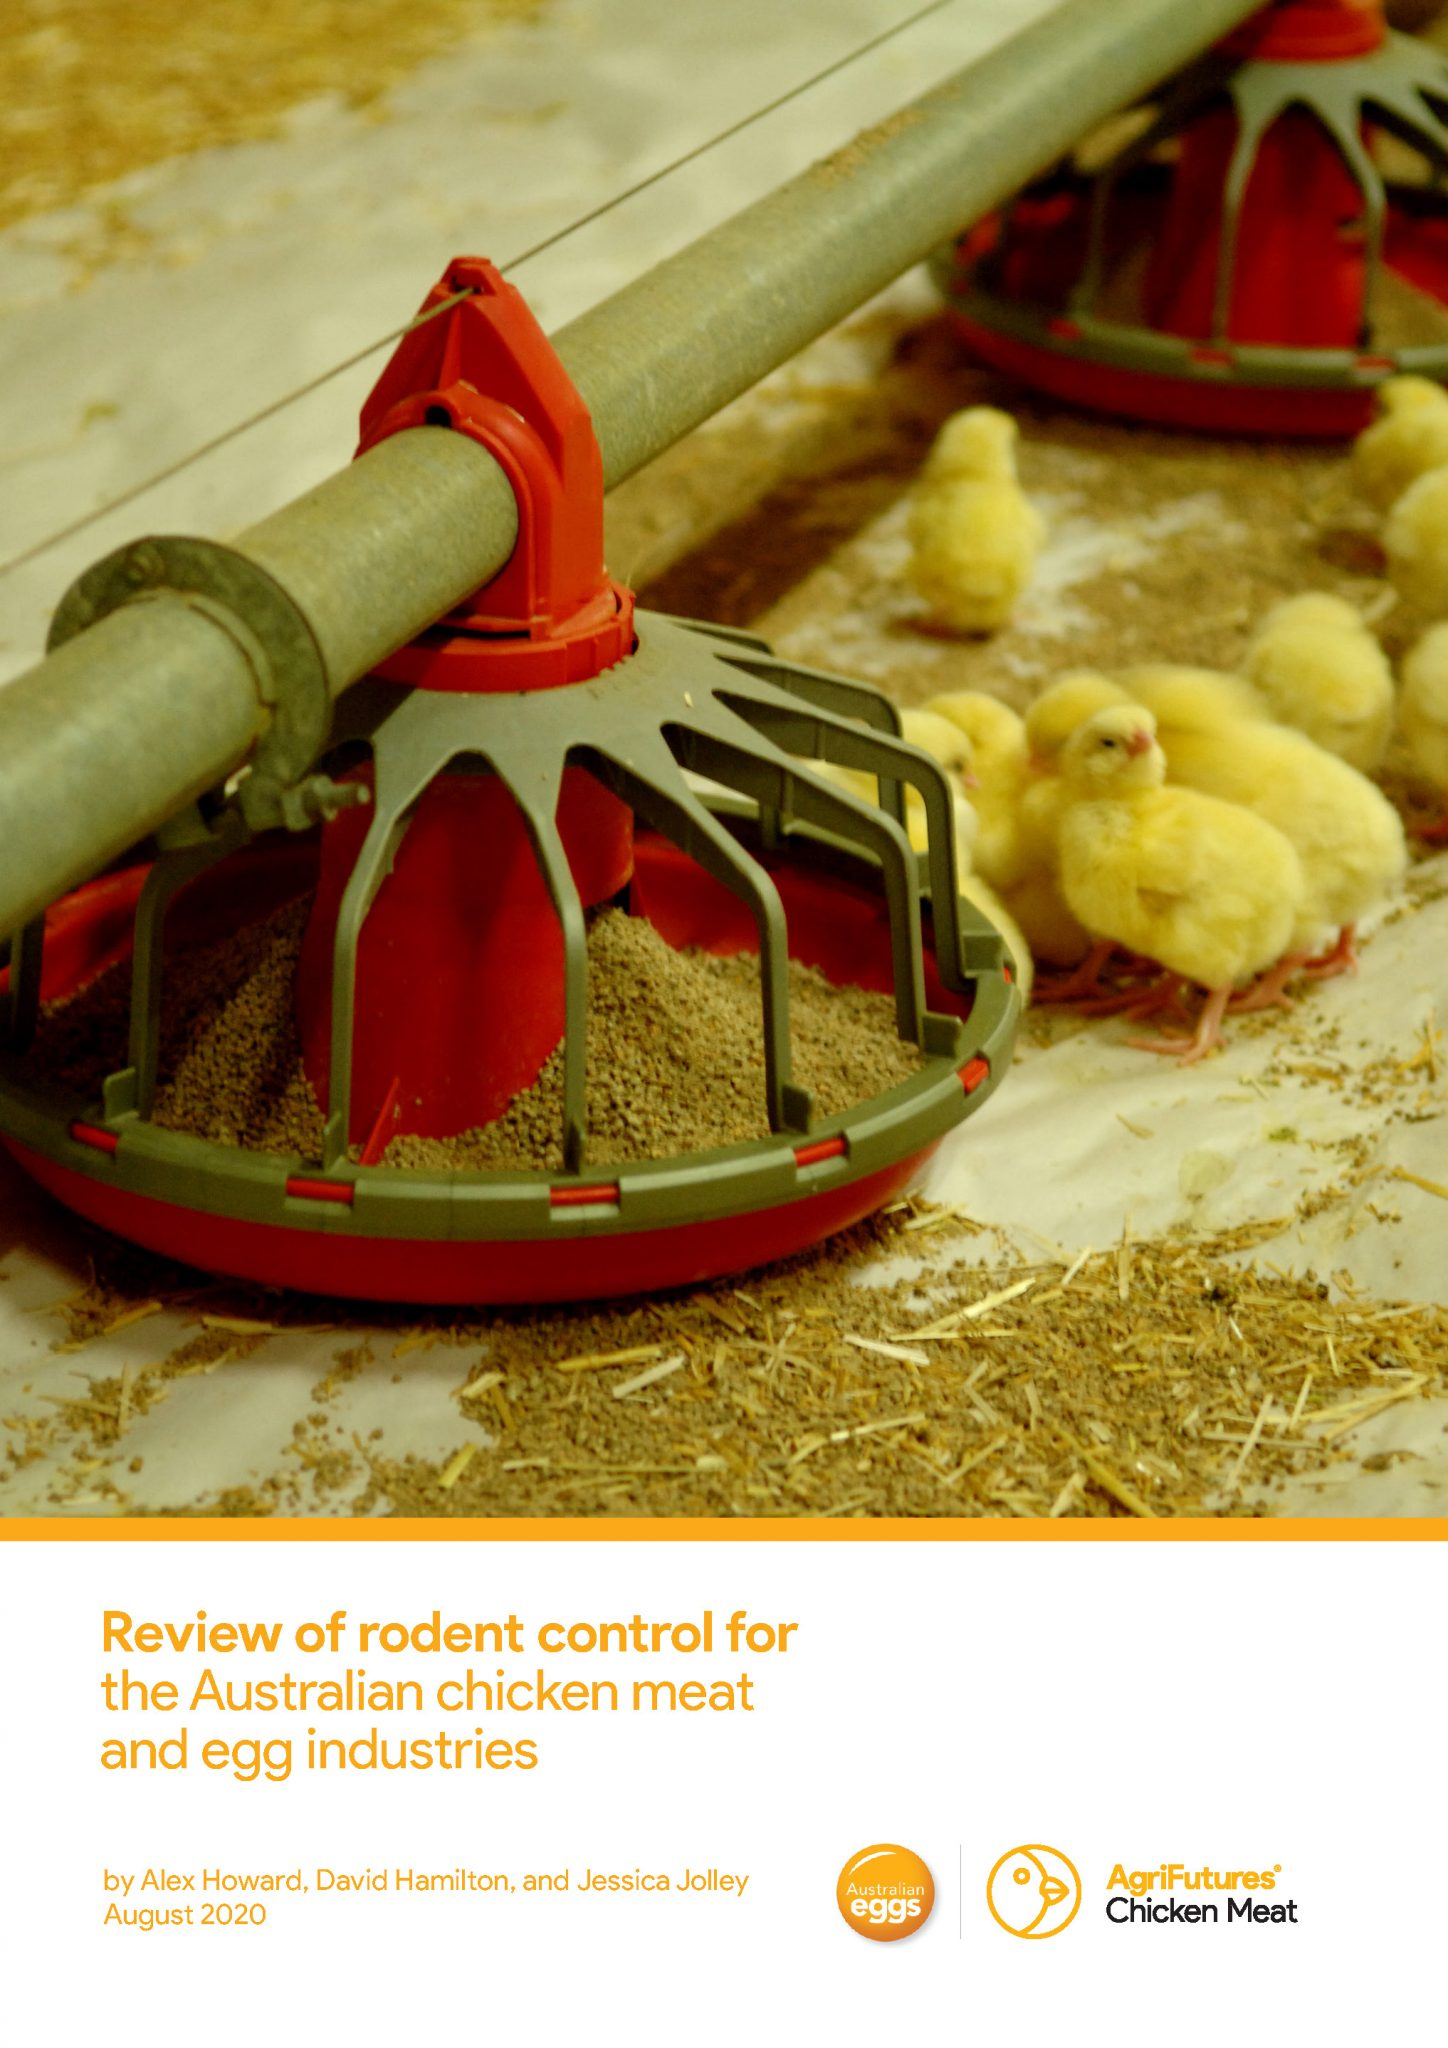 Review of rodent control for the Australian chicken meat and egg industries - image